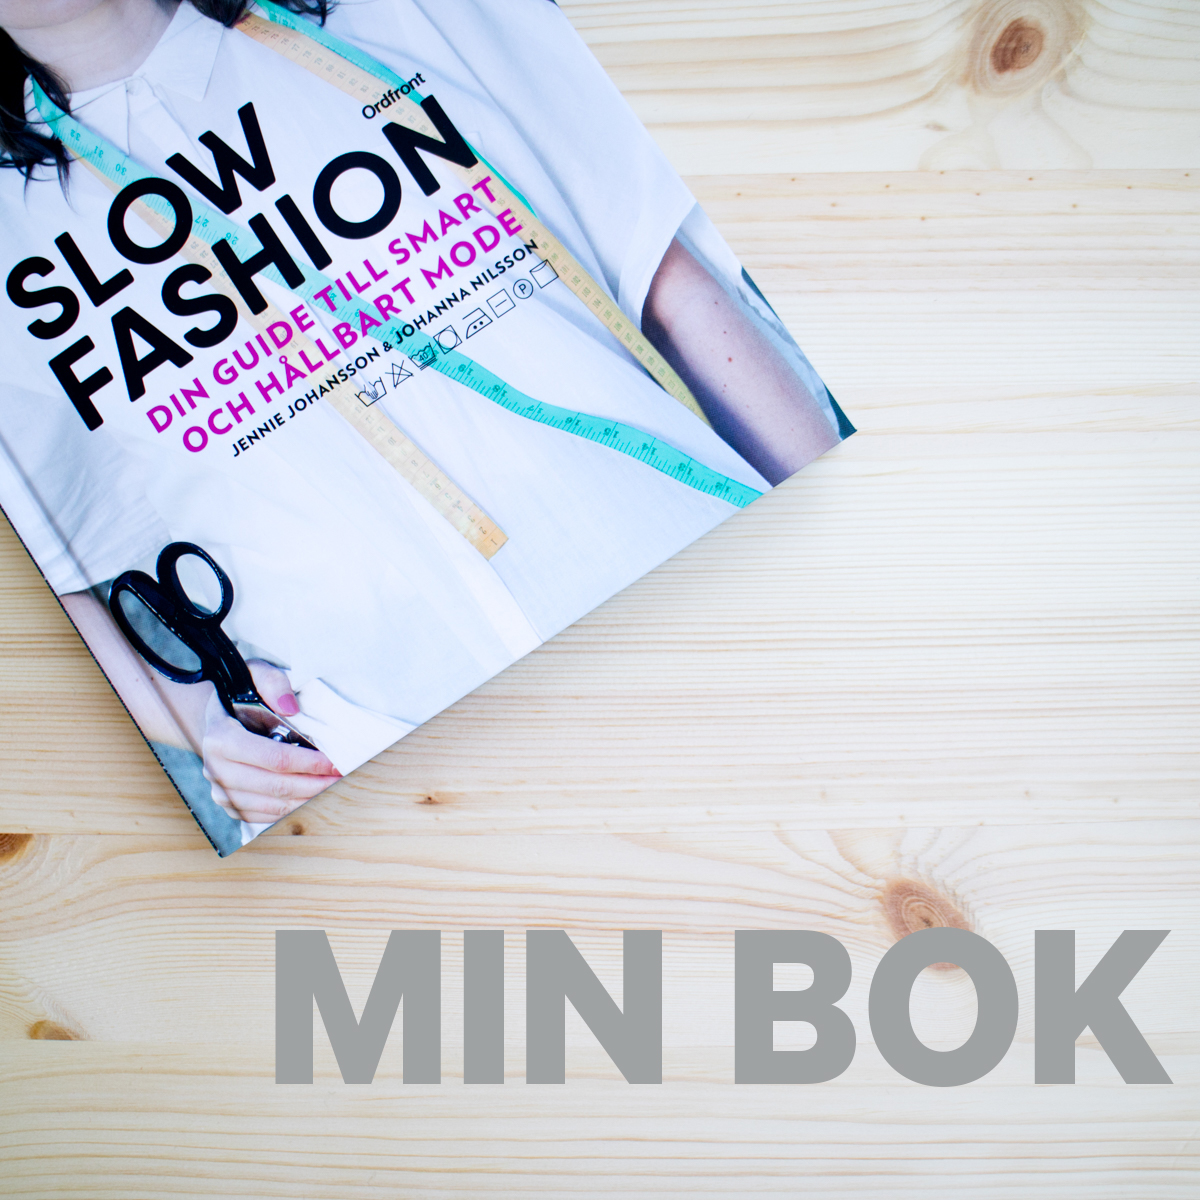 Slow fashion - bok